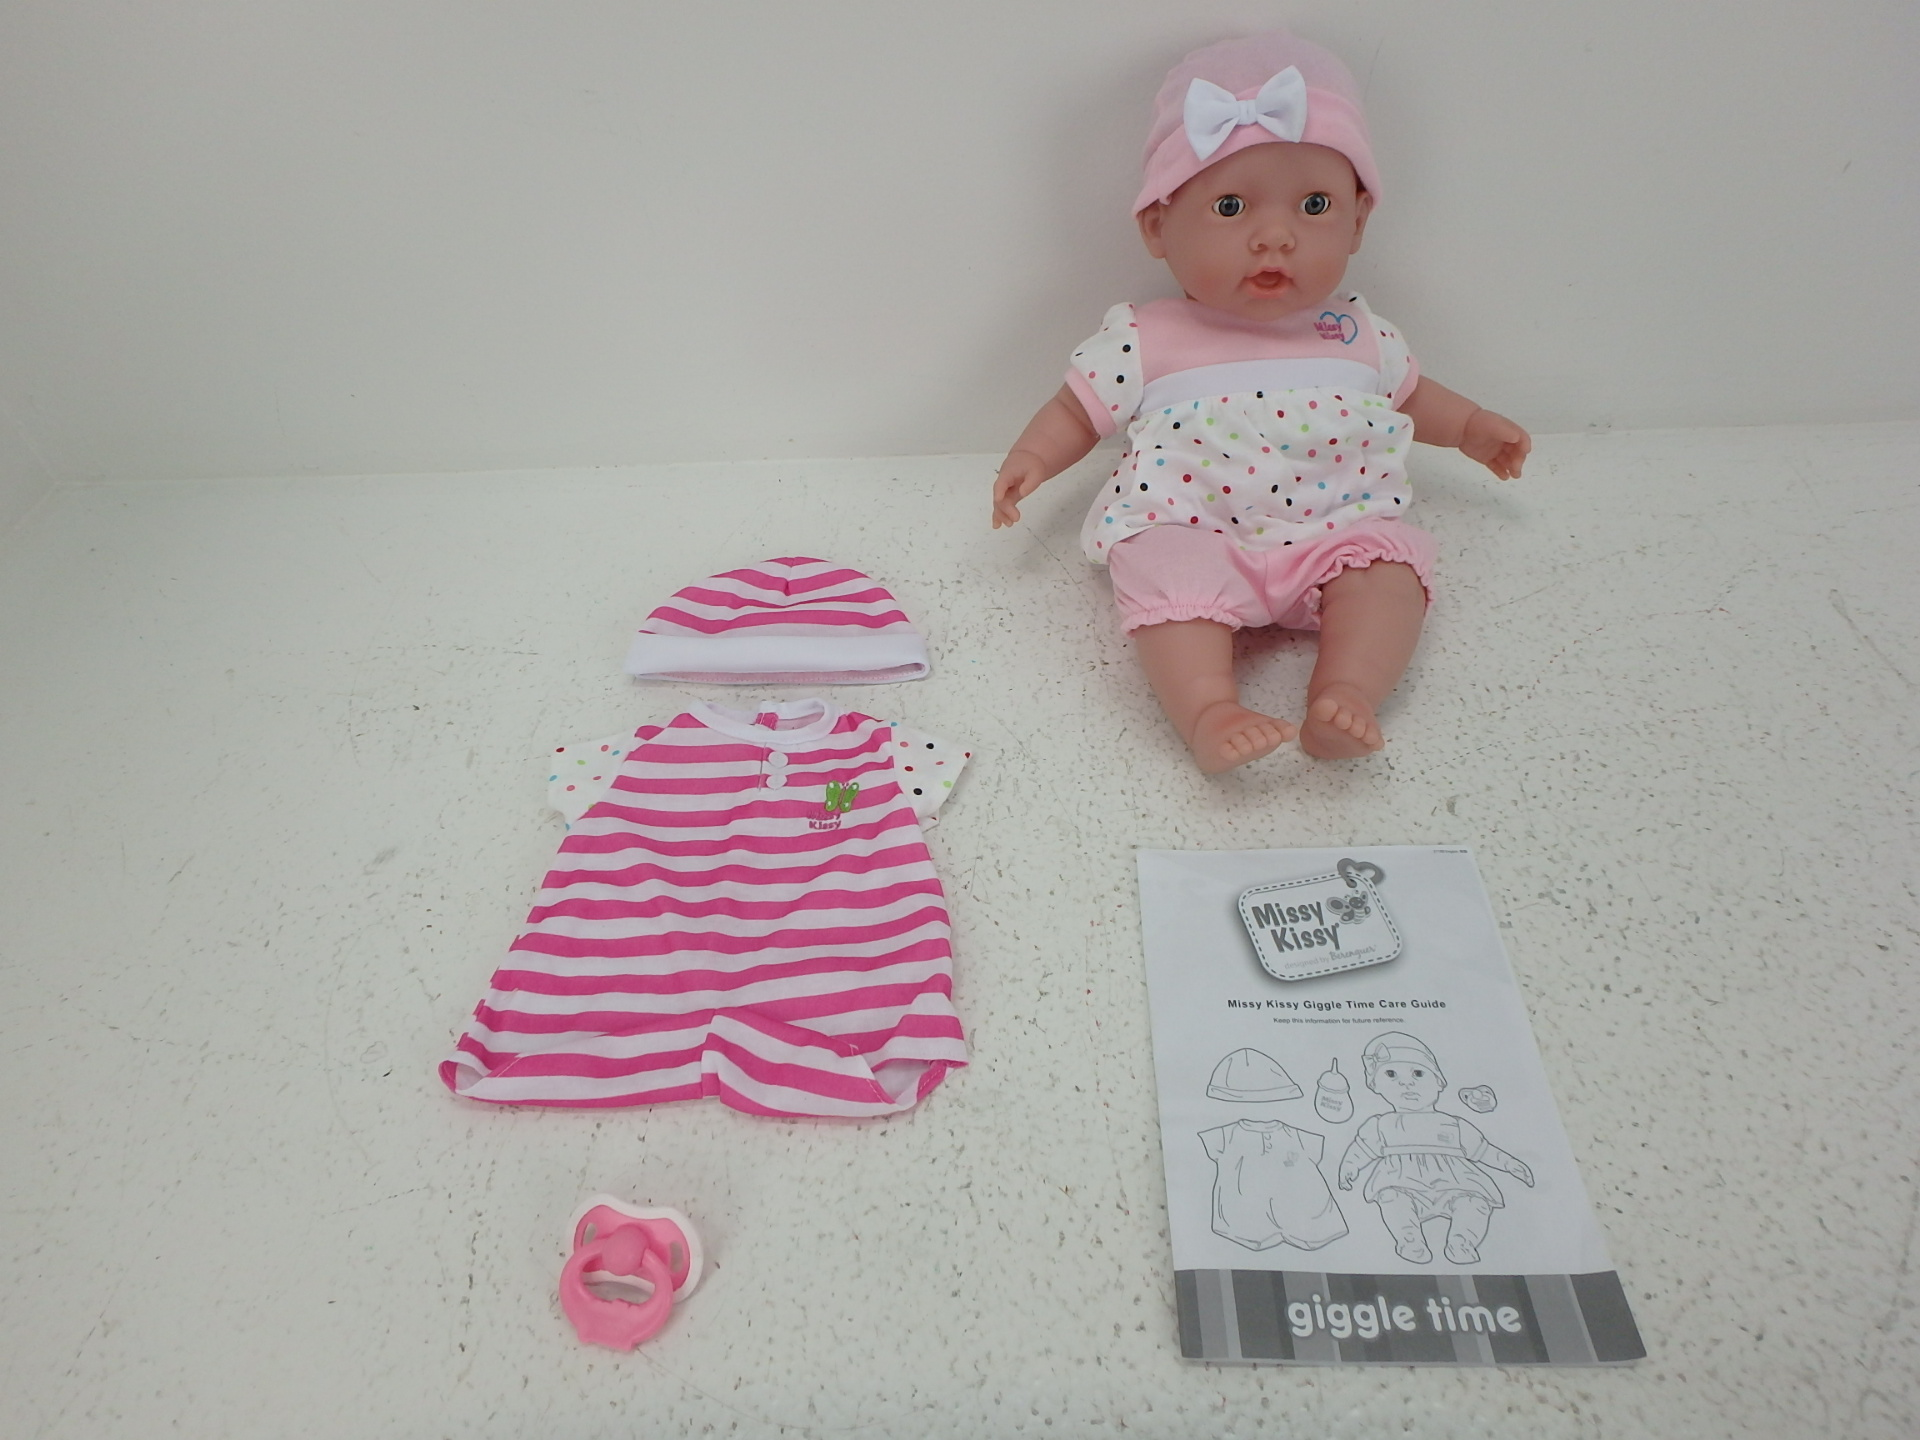 Missy Kissy Giggle Time 15 Moving Interactive Body Doll Jc Toys